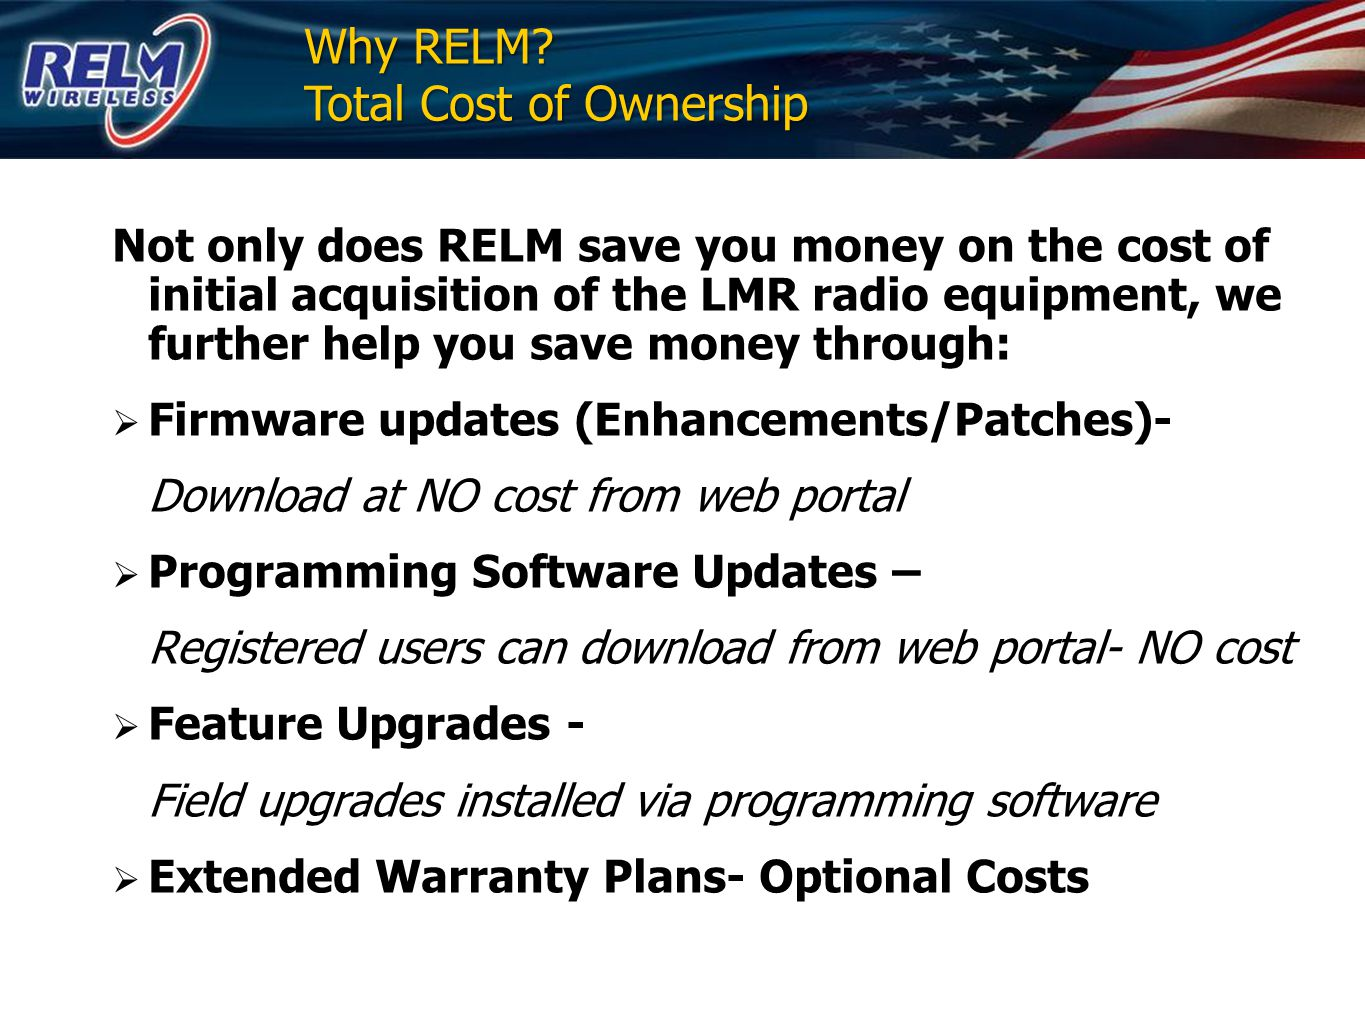 Initial Cost $1,000 - $1,500 portable $1,950 - $2,500 mobile *Based on Options 3-Year Warranty For Volume Purchases RELM's Flat Rate For Radio Repair is $190 Versus $394 for the Market Leader Year 1 Total Cost of Ownership Year 7 MTBF Calculation = 721,059 Hours (82 yrs) After 1 Year 99.2% of Products Are Failure-Free After 1 Year 99.2% of Products Are Failure-Free After 10 Years 95% of Products Are Failure- Free After 10 Years 95% of Products Are Failure- Free Total Cost of Ownership from RELM includes the following (at no additional charge): 1) Firmware revision updates 2) Programming Software Editor updates 3) Customer Service/Technical Support for life of the product